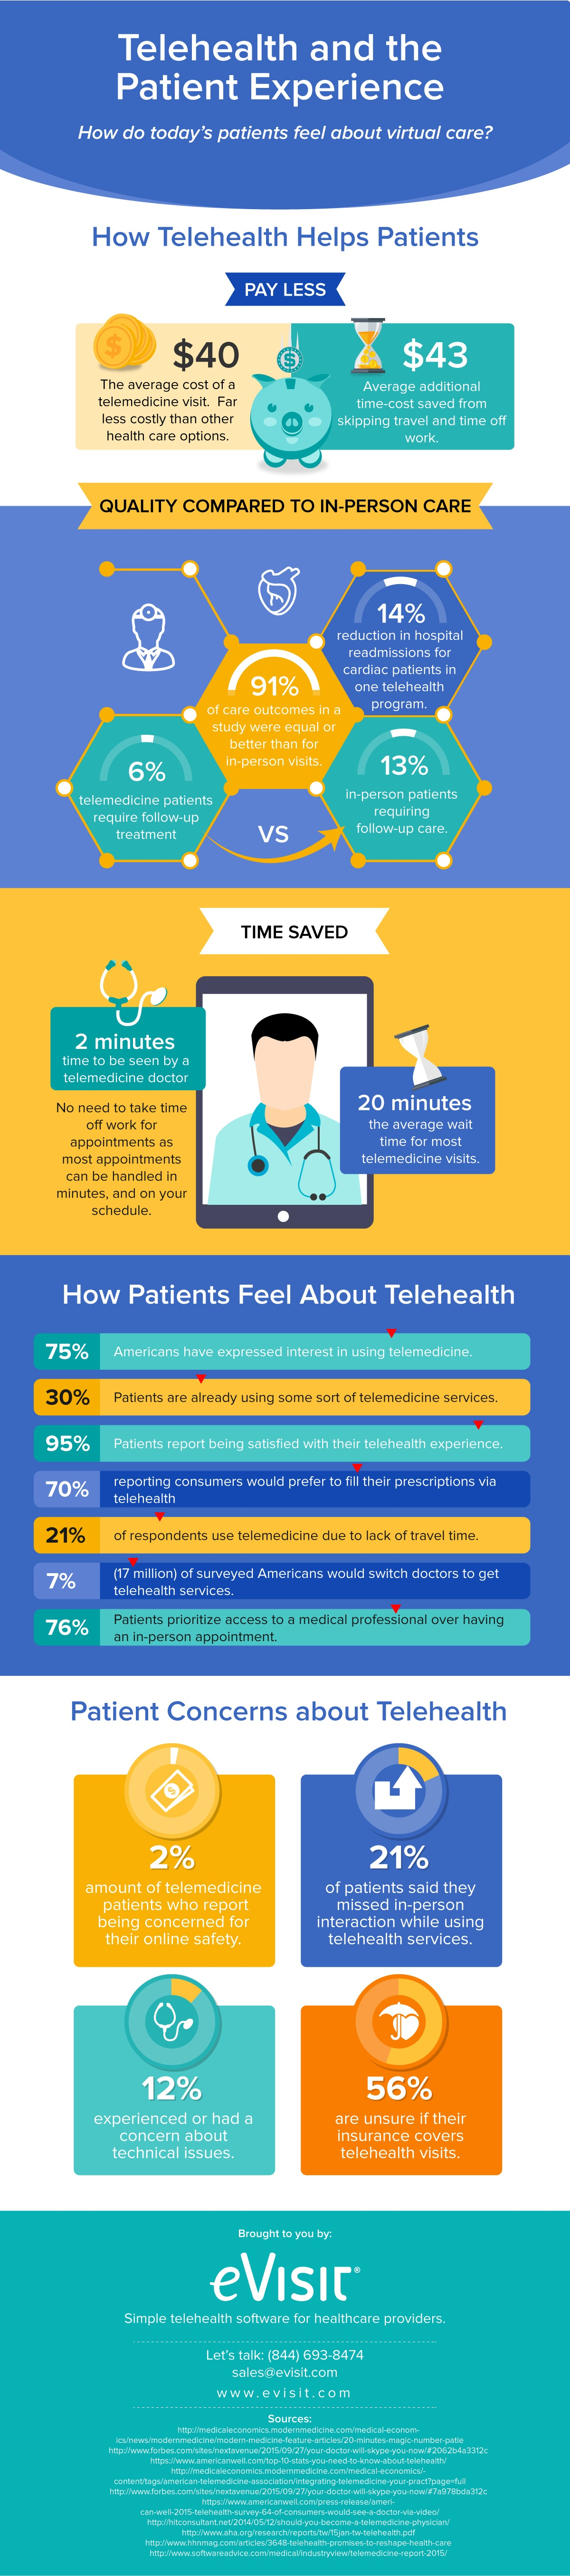 Telehealth Patient Experience Infographic